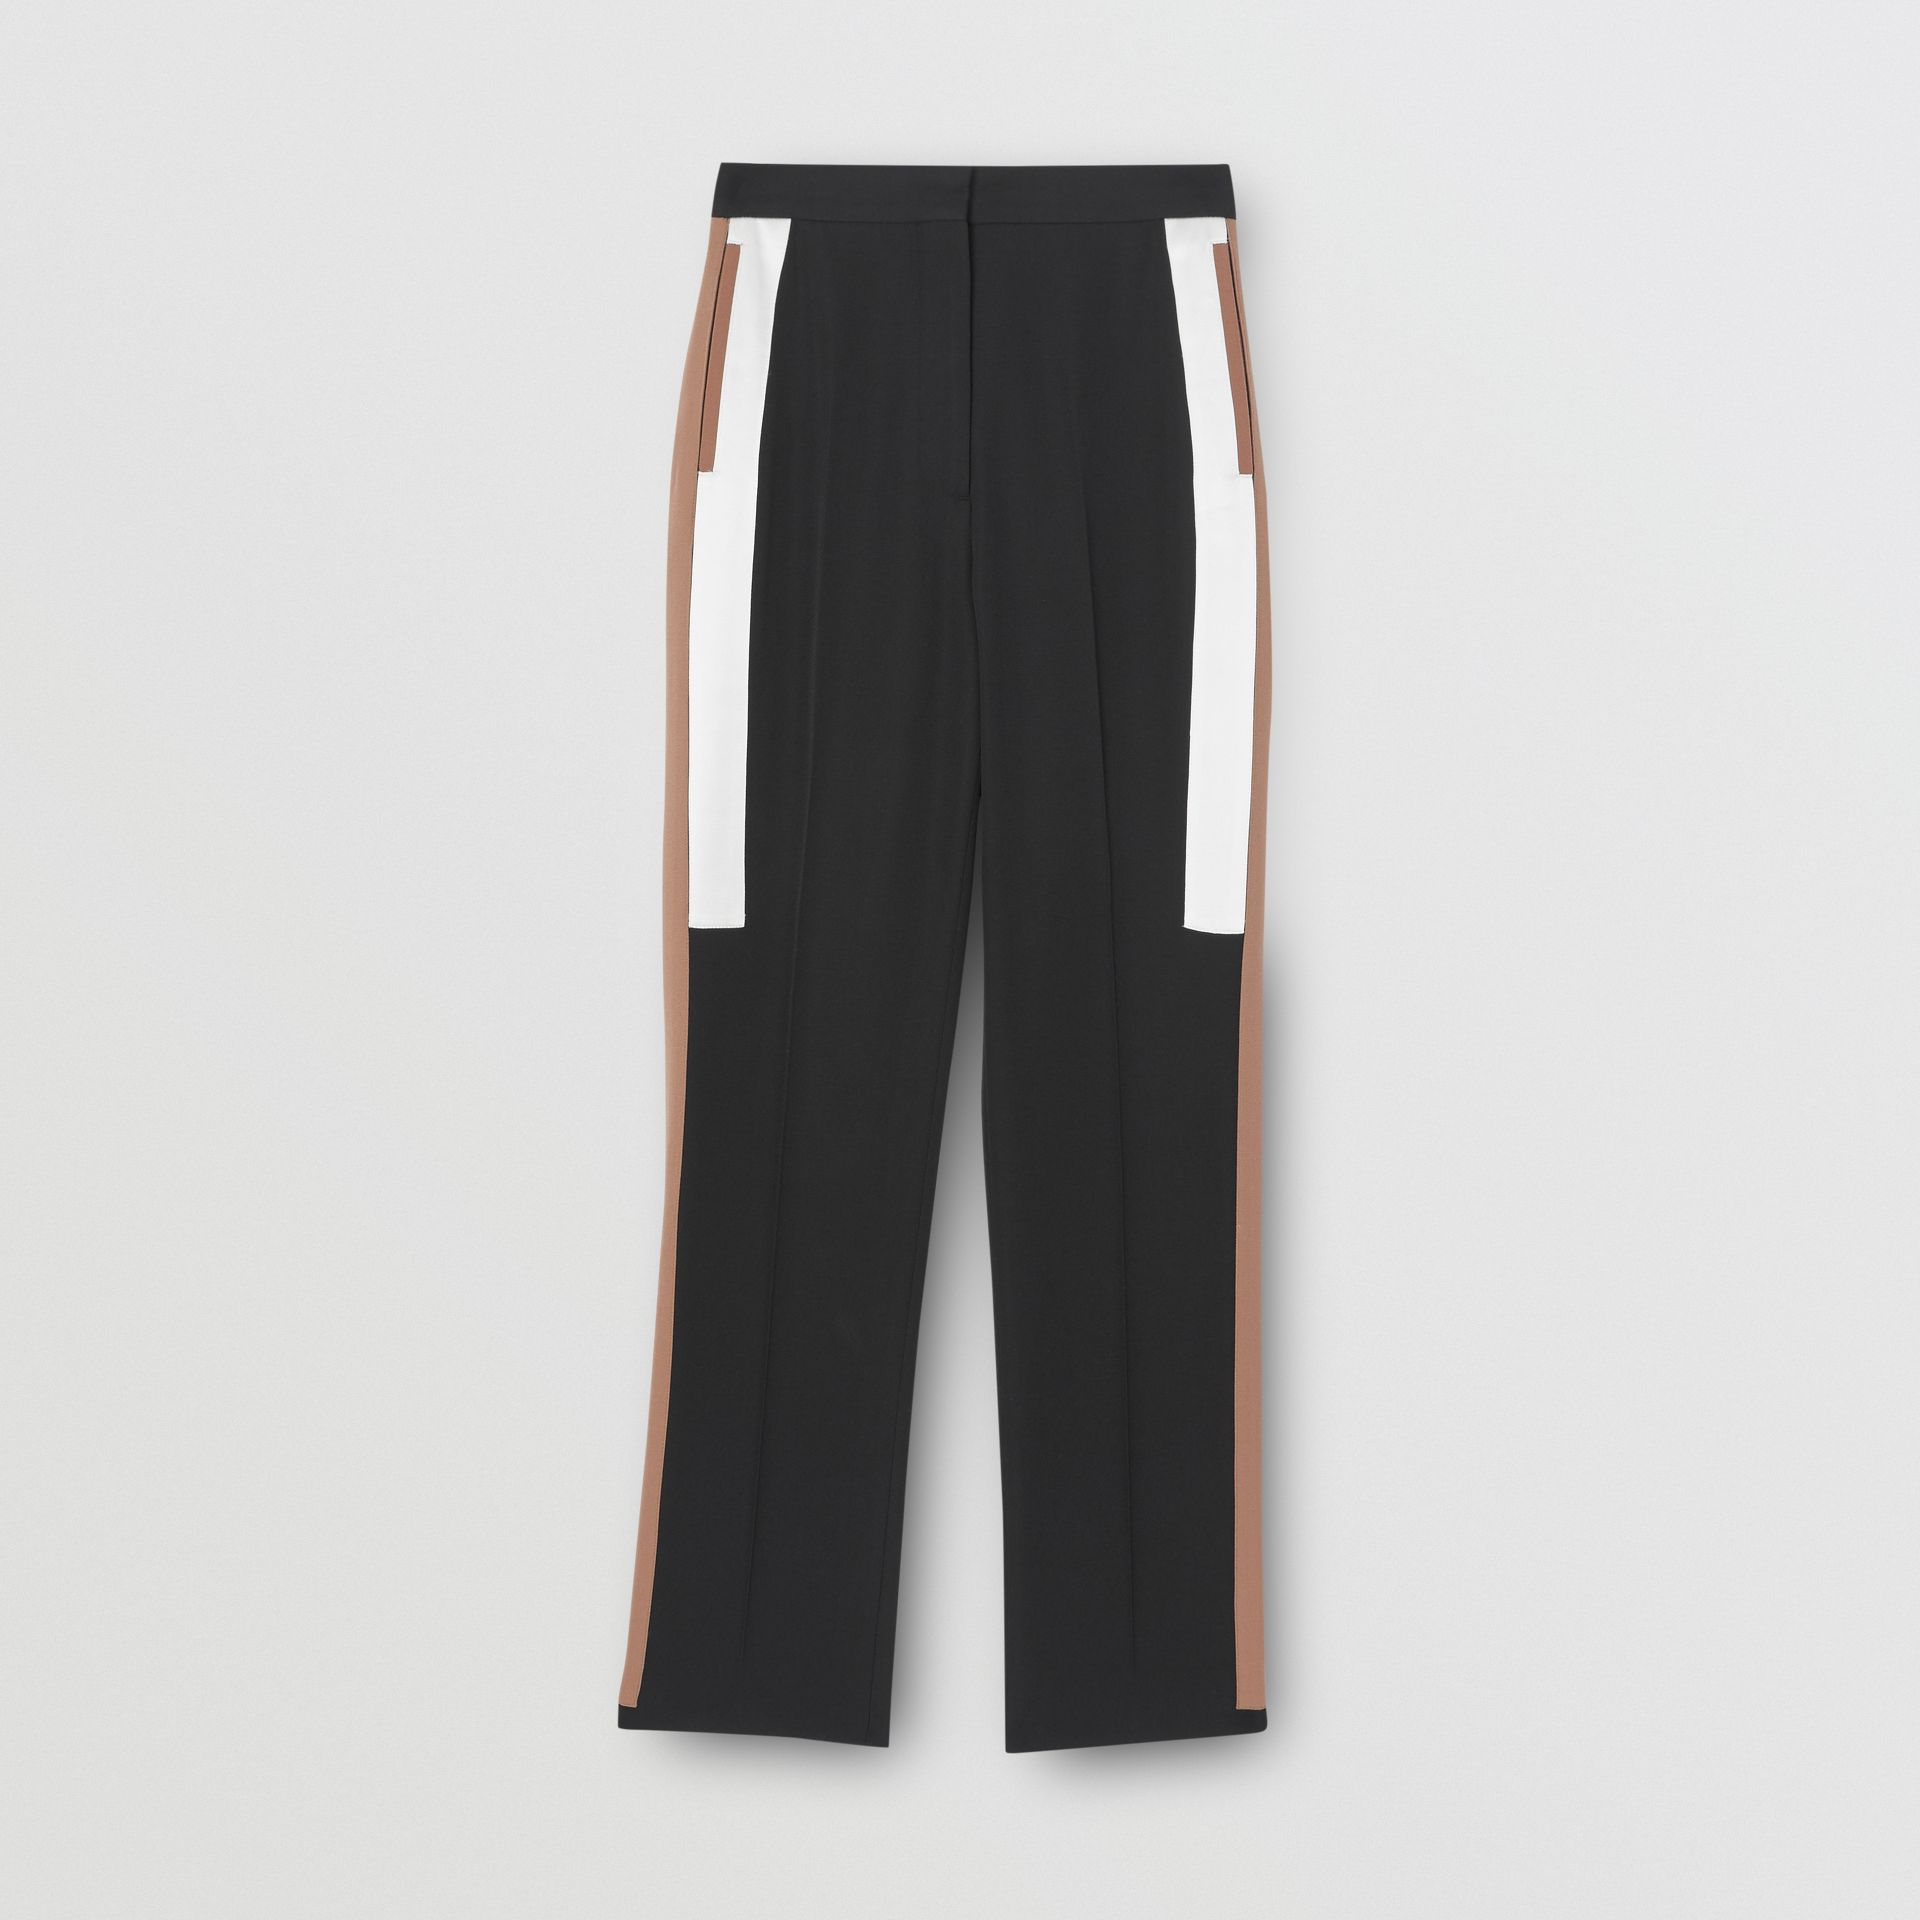 Stripe Detail Wool Tailored Trousers in Black - Women | Burberry - gallery image 3